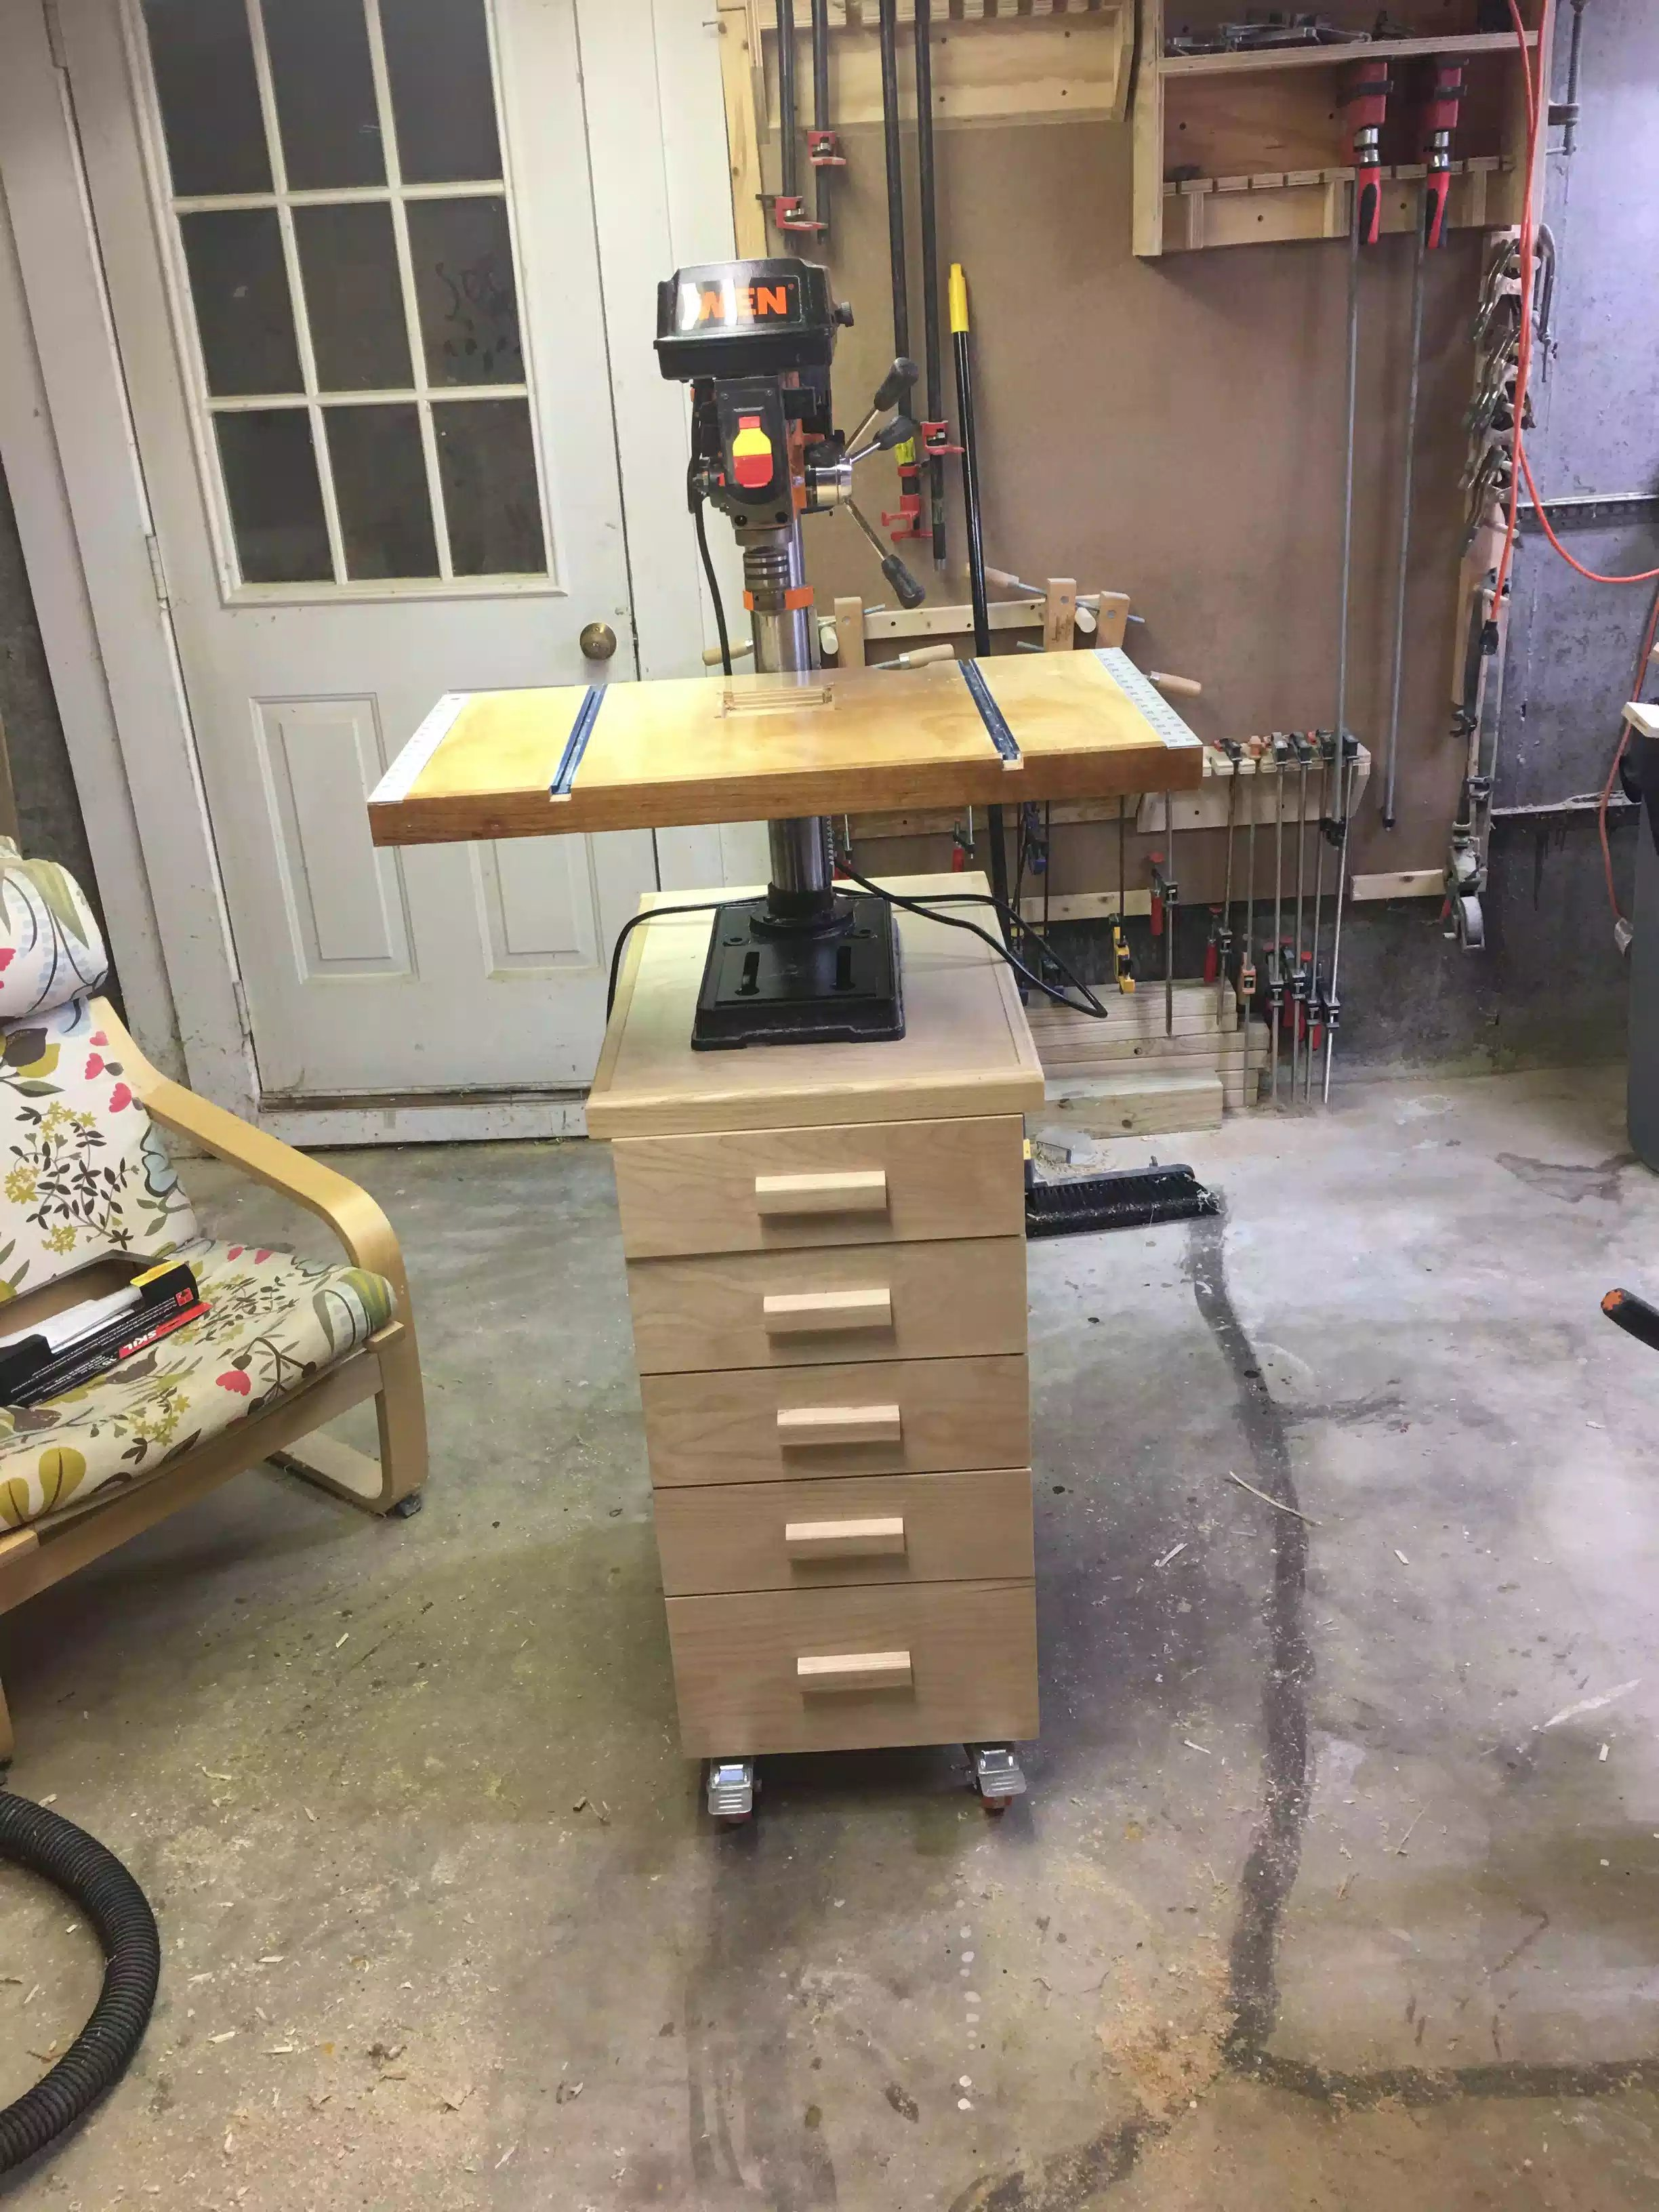 Completed drill press cart